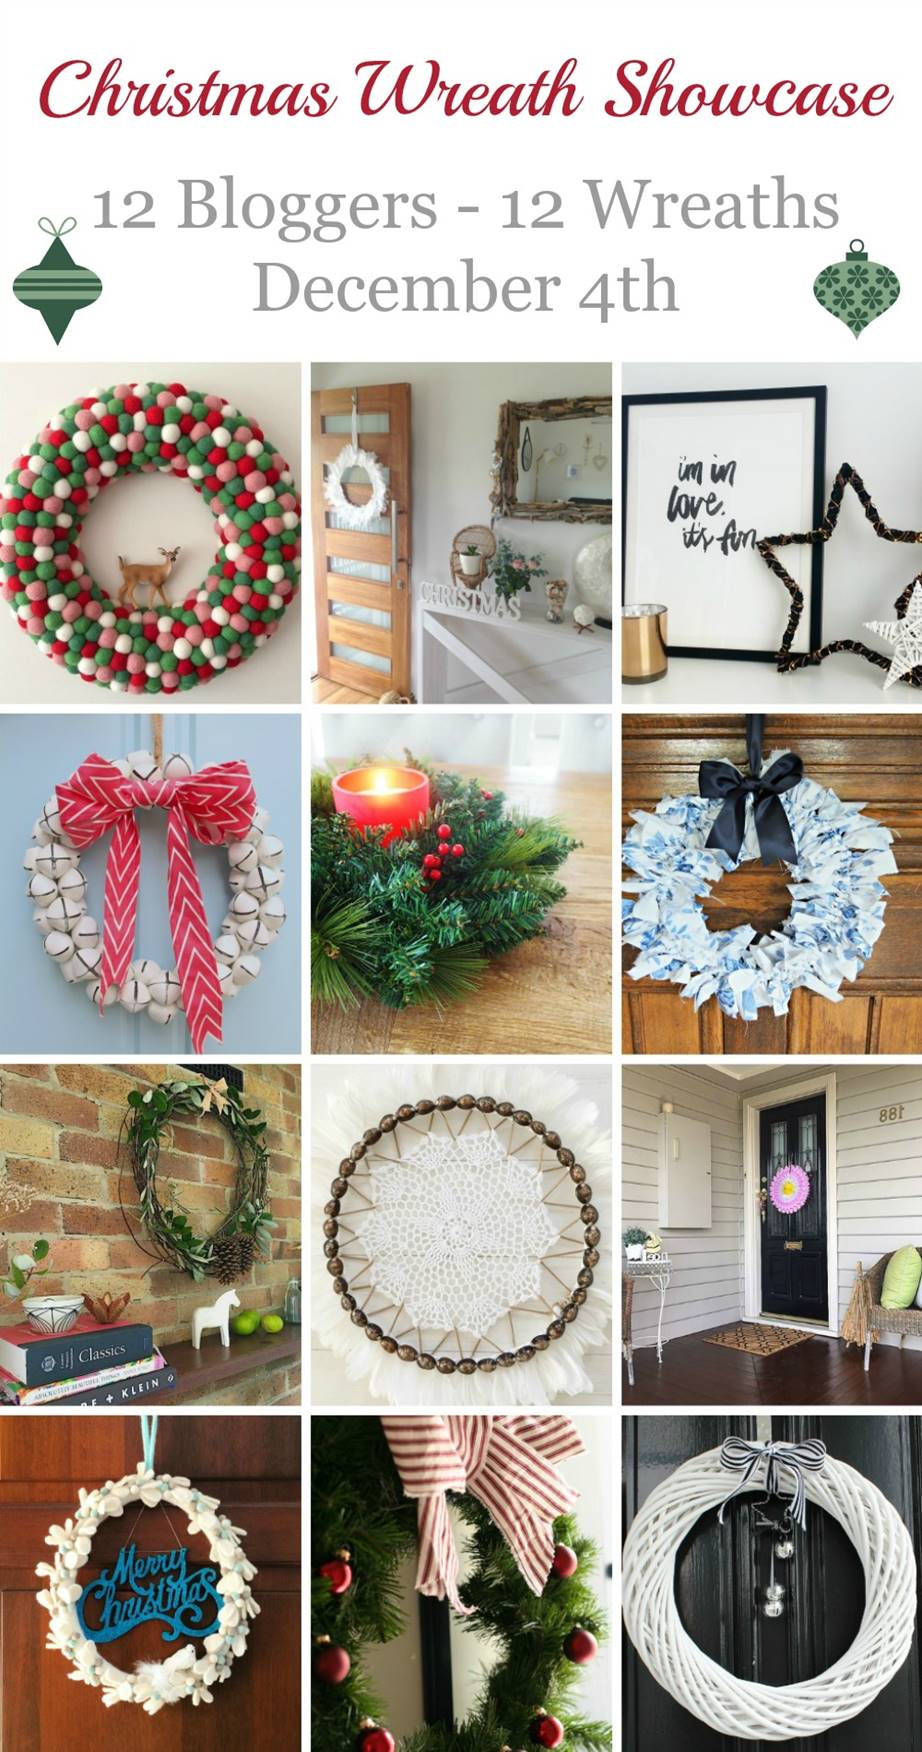 Christmas wreath showcase